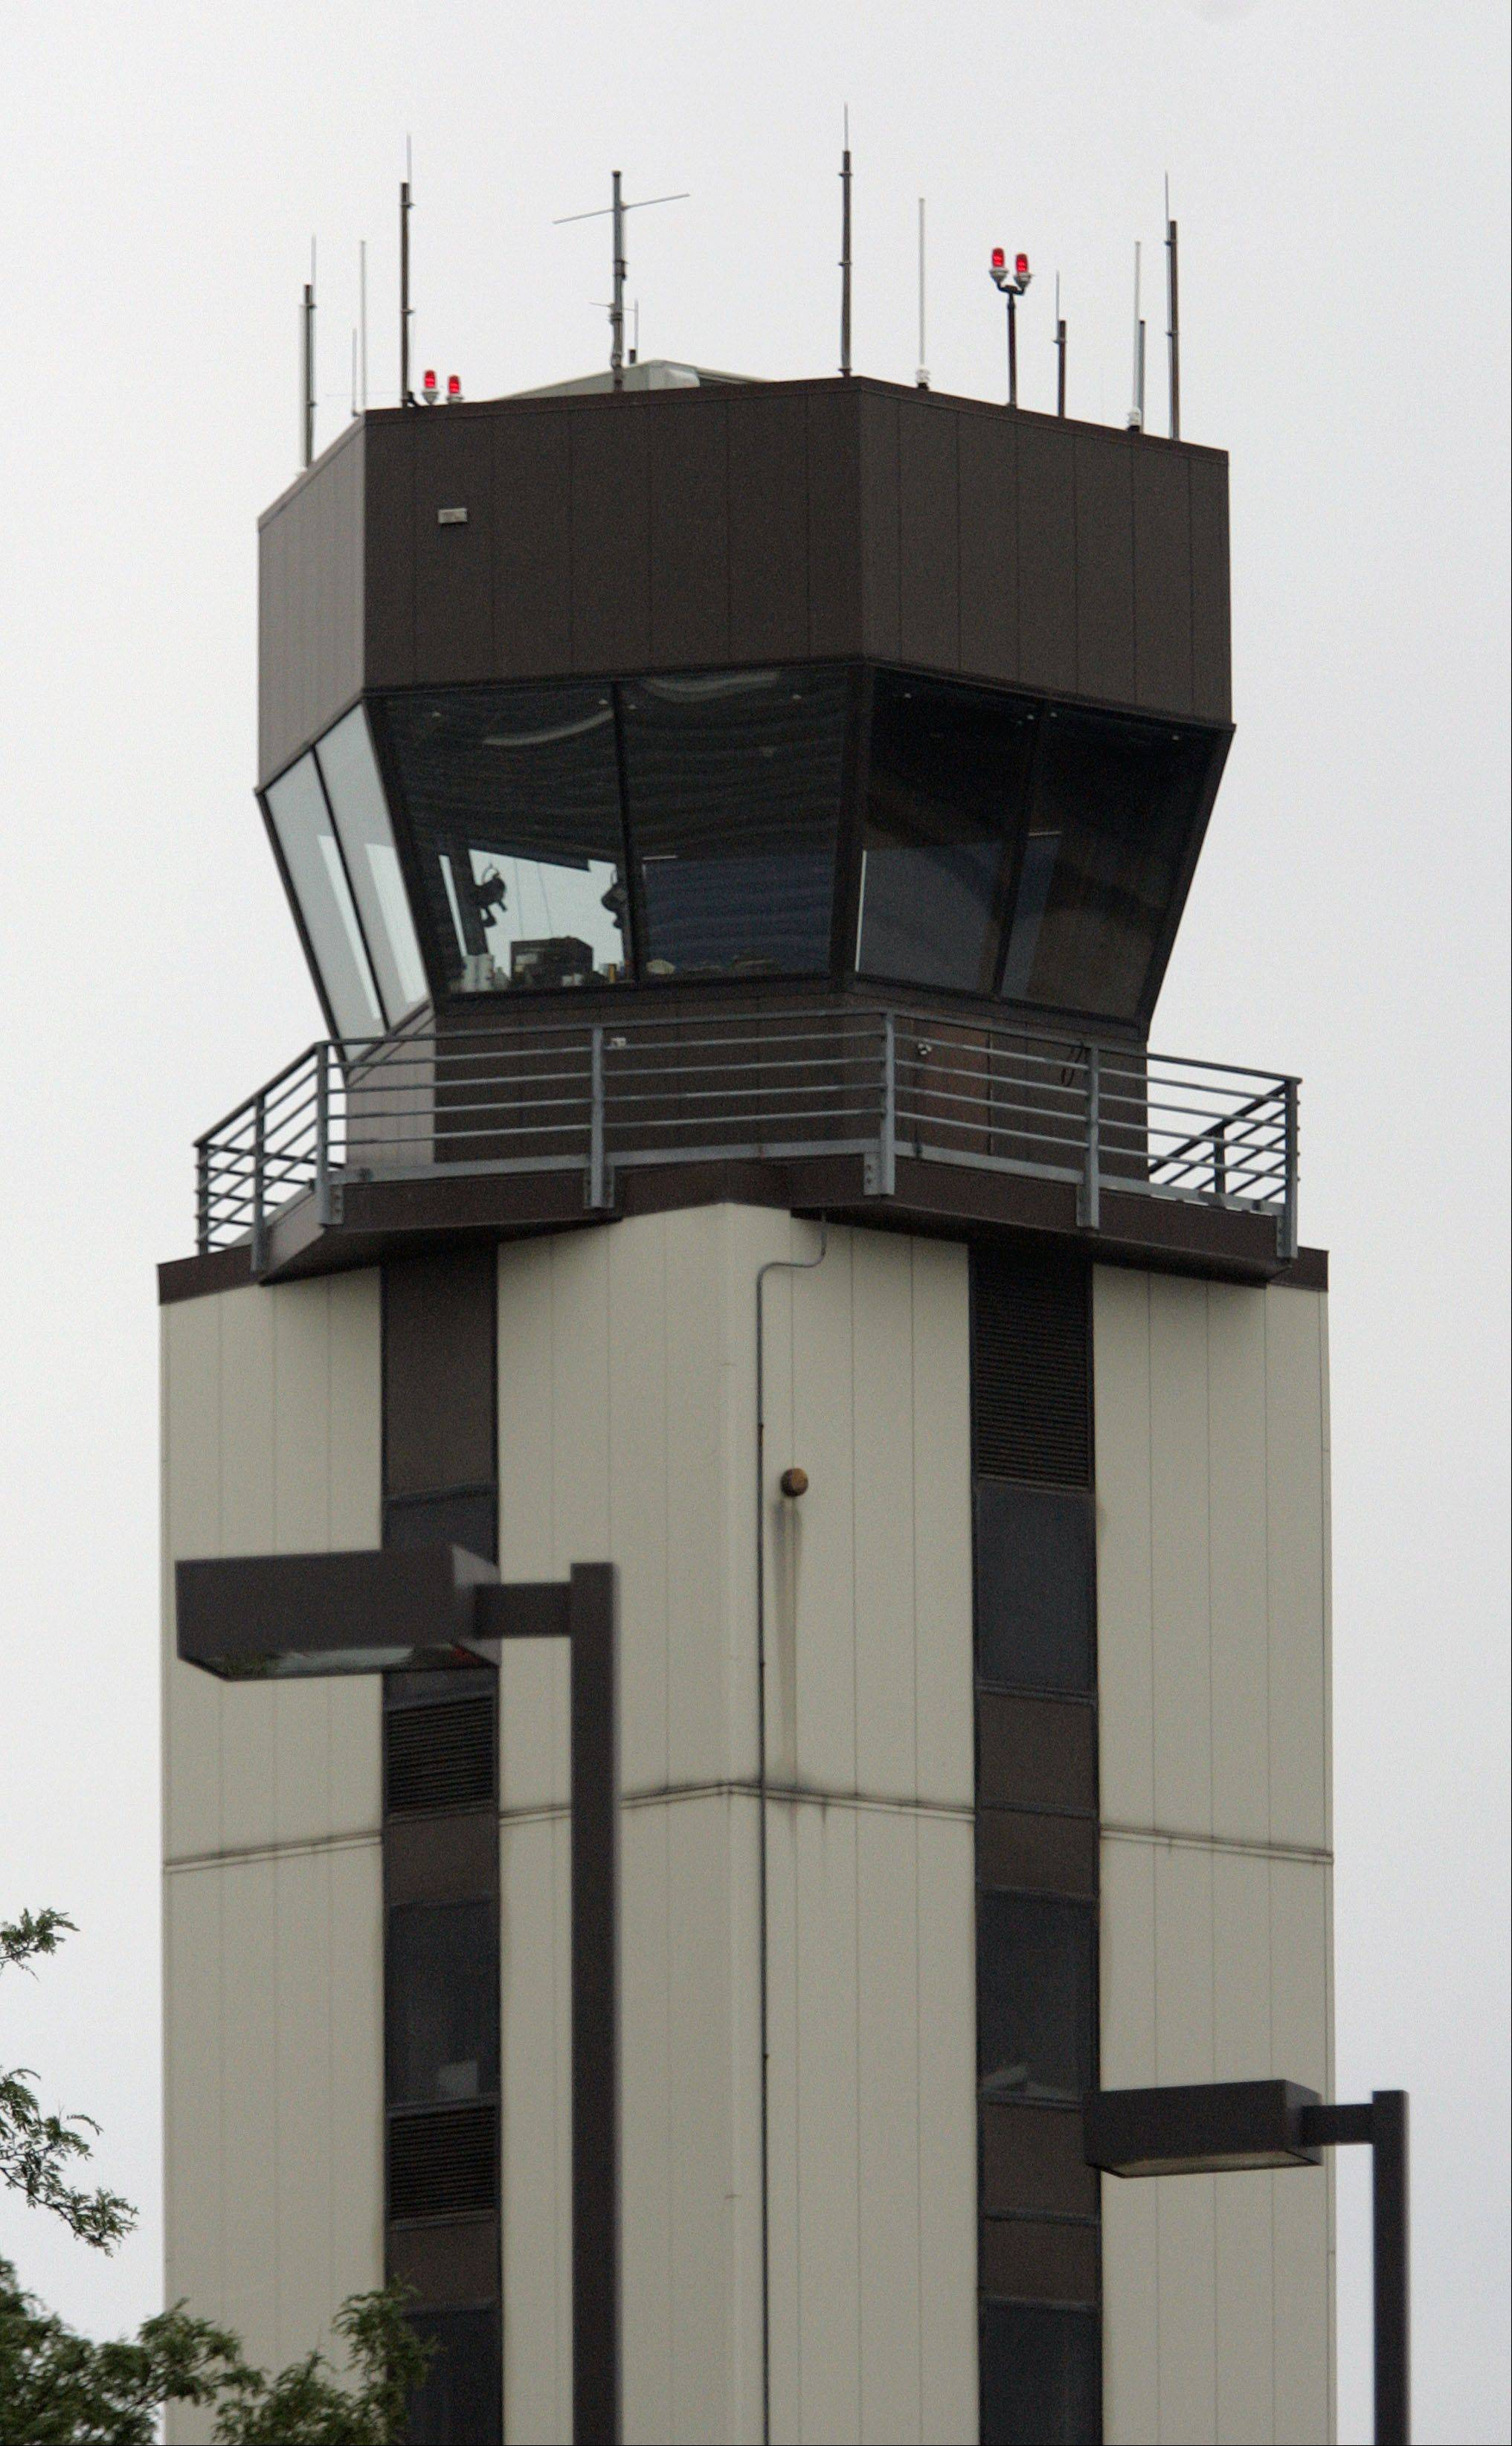 Waukegan airport might pay to keep tower operating under sequester